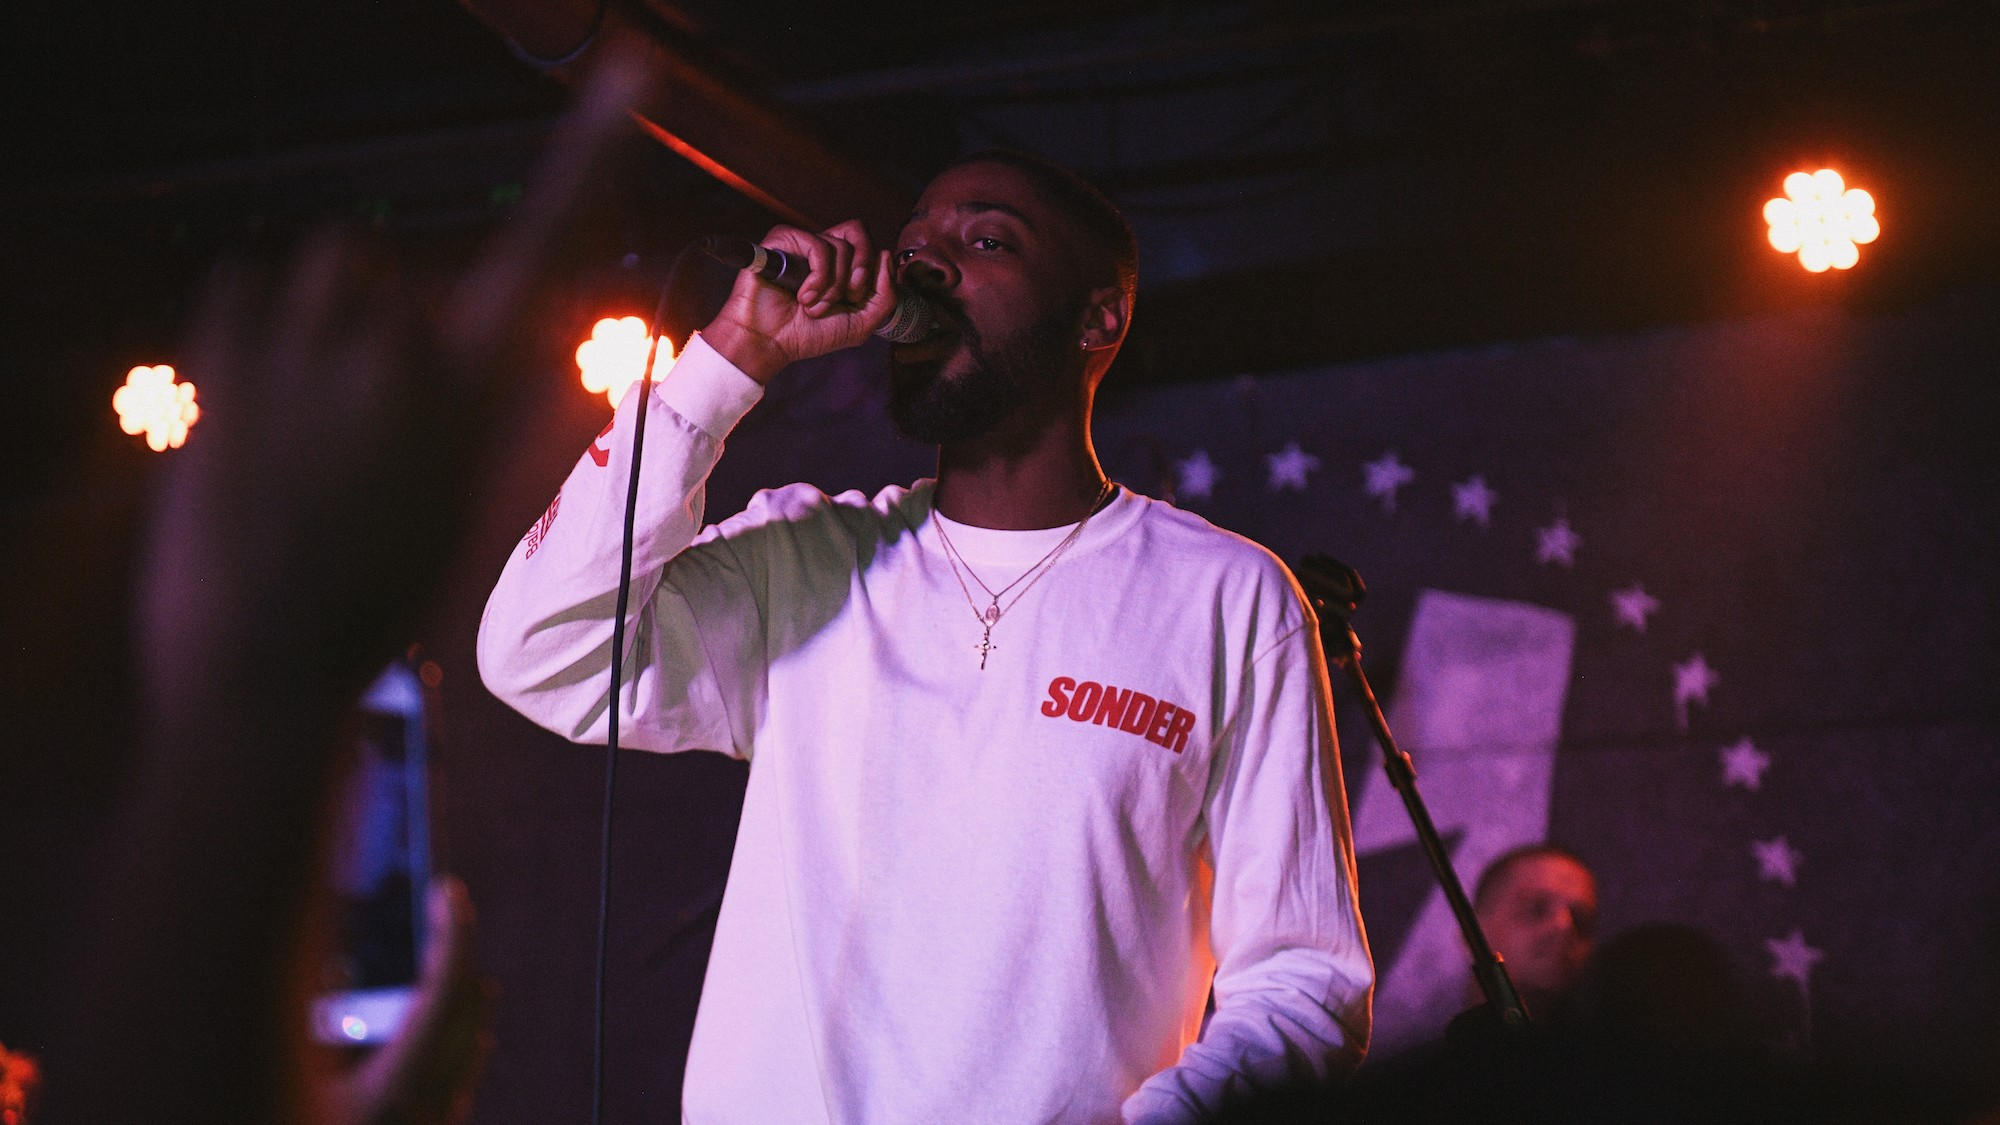 Brent Faiyaz's R&B Has Rough Edges, But That's the Point - VICE